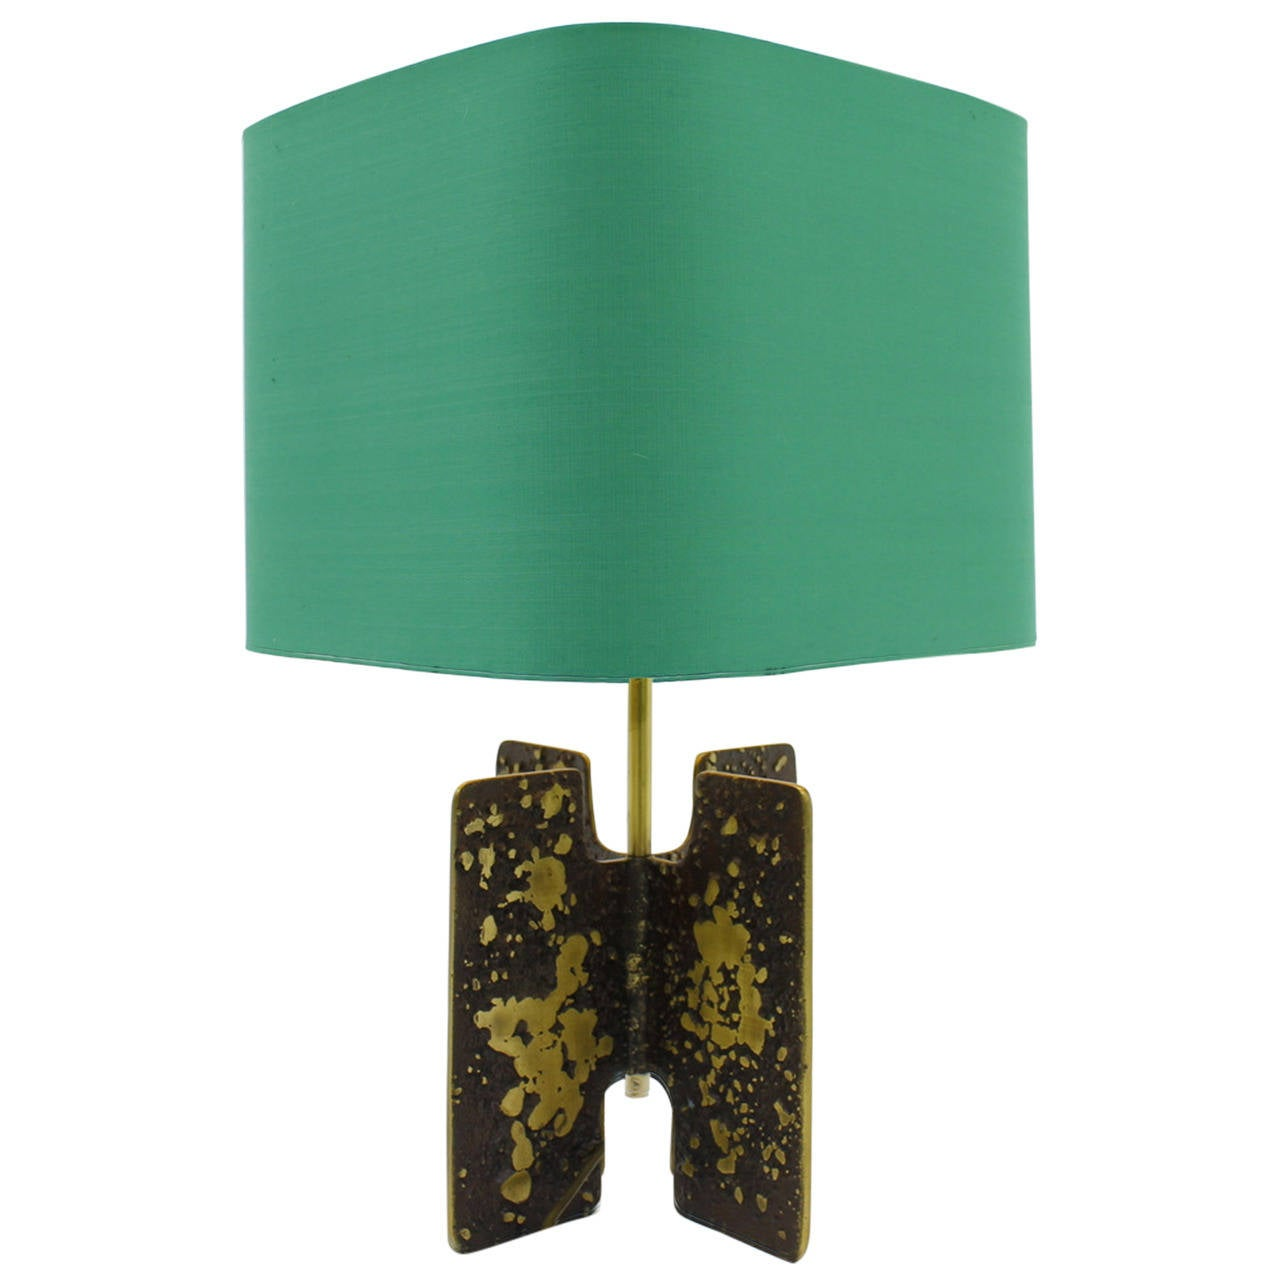 Brutalist Table Lamp in Brass, circa 1960s